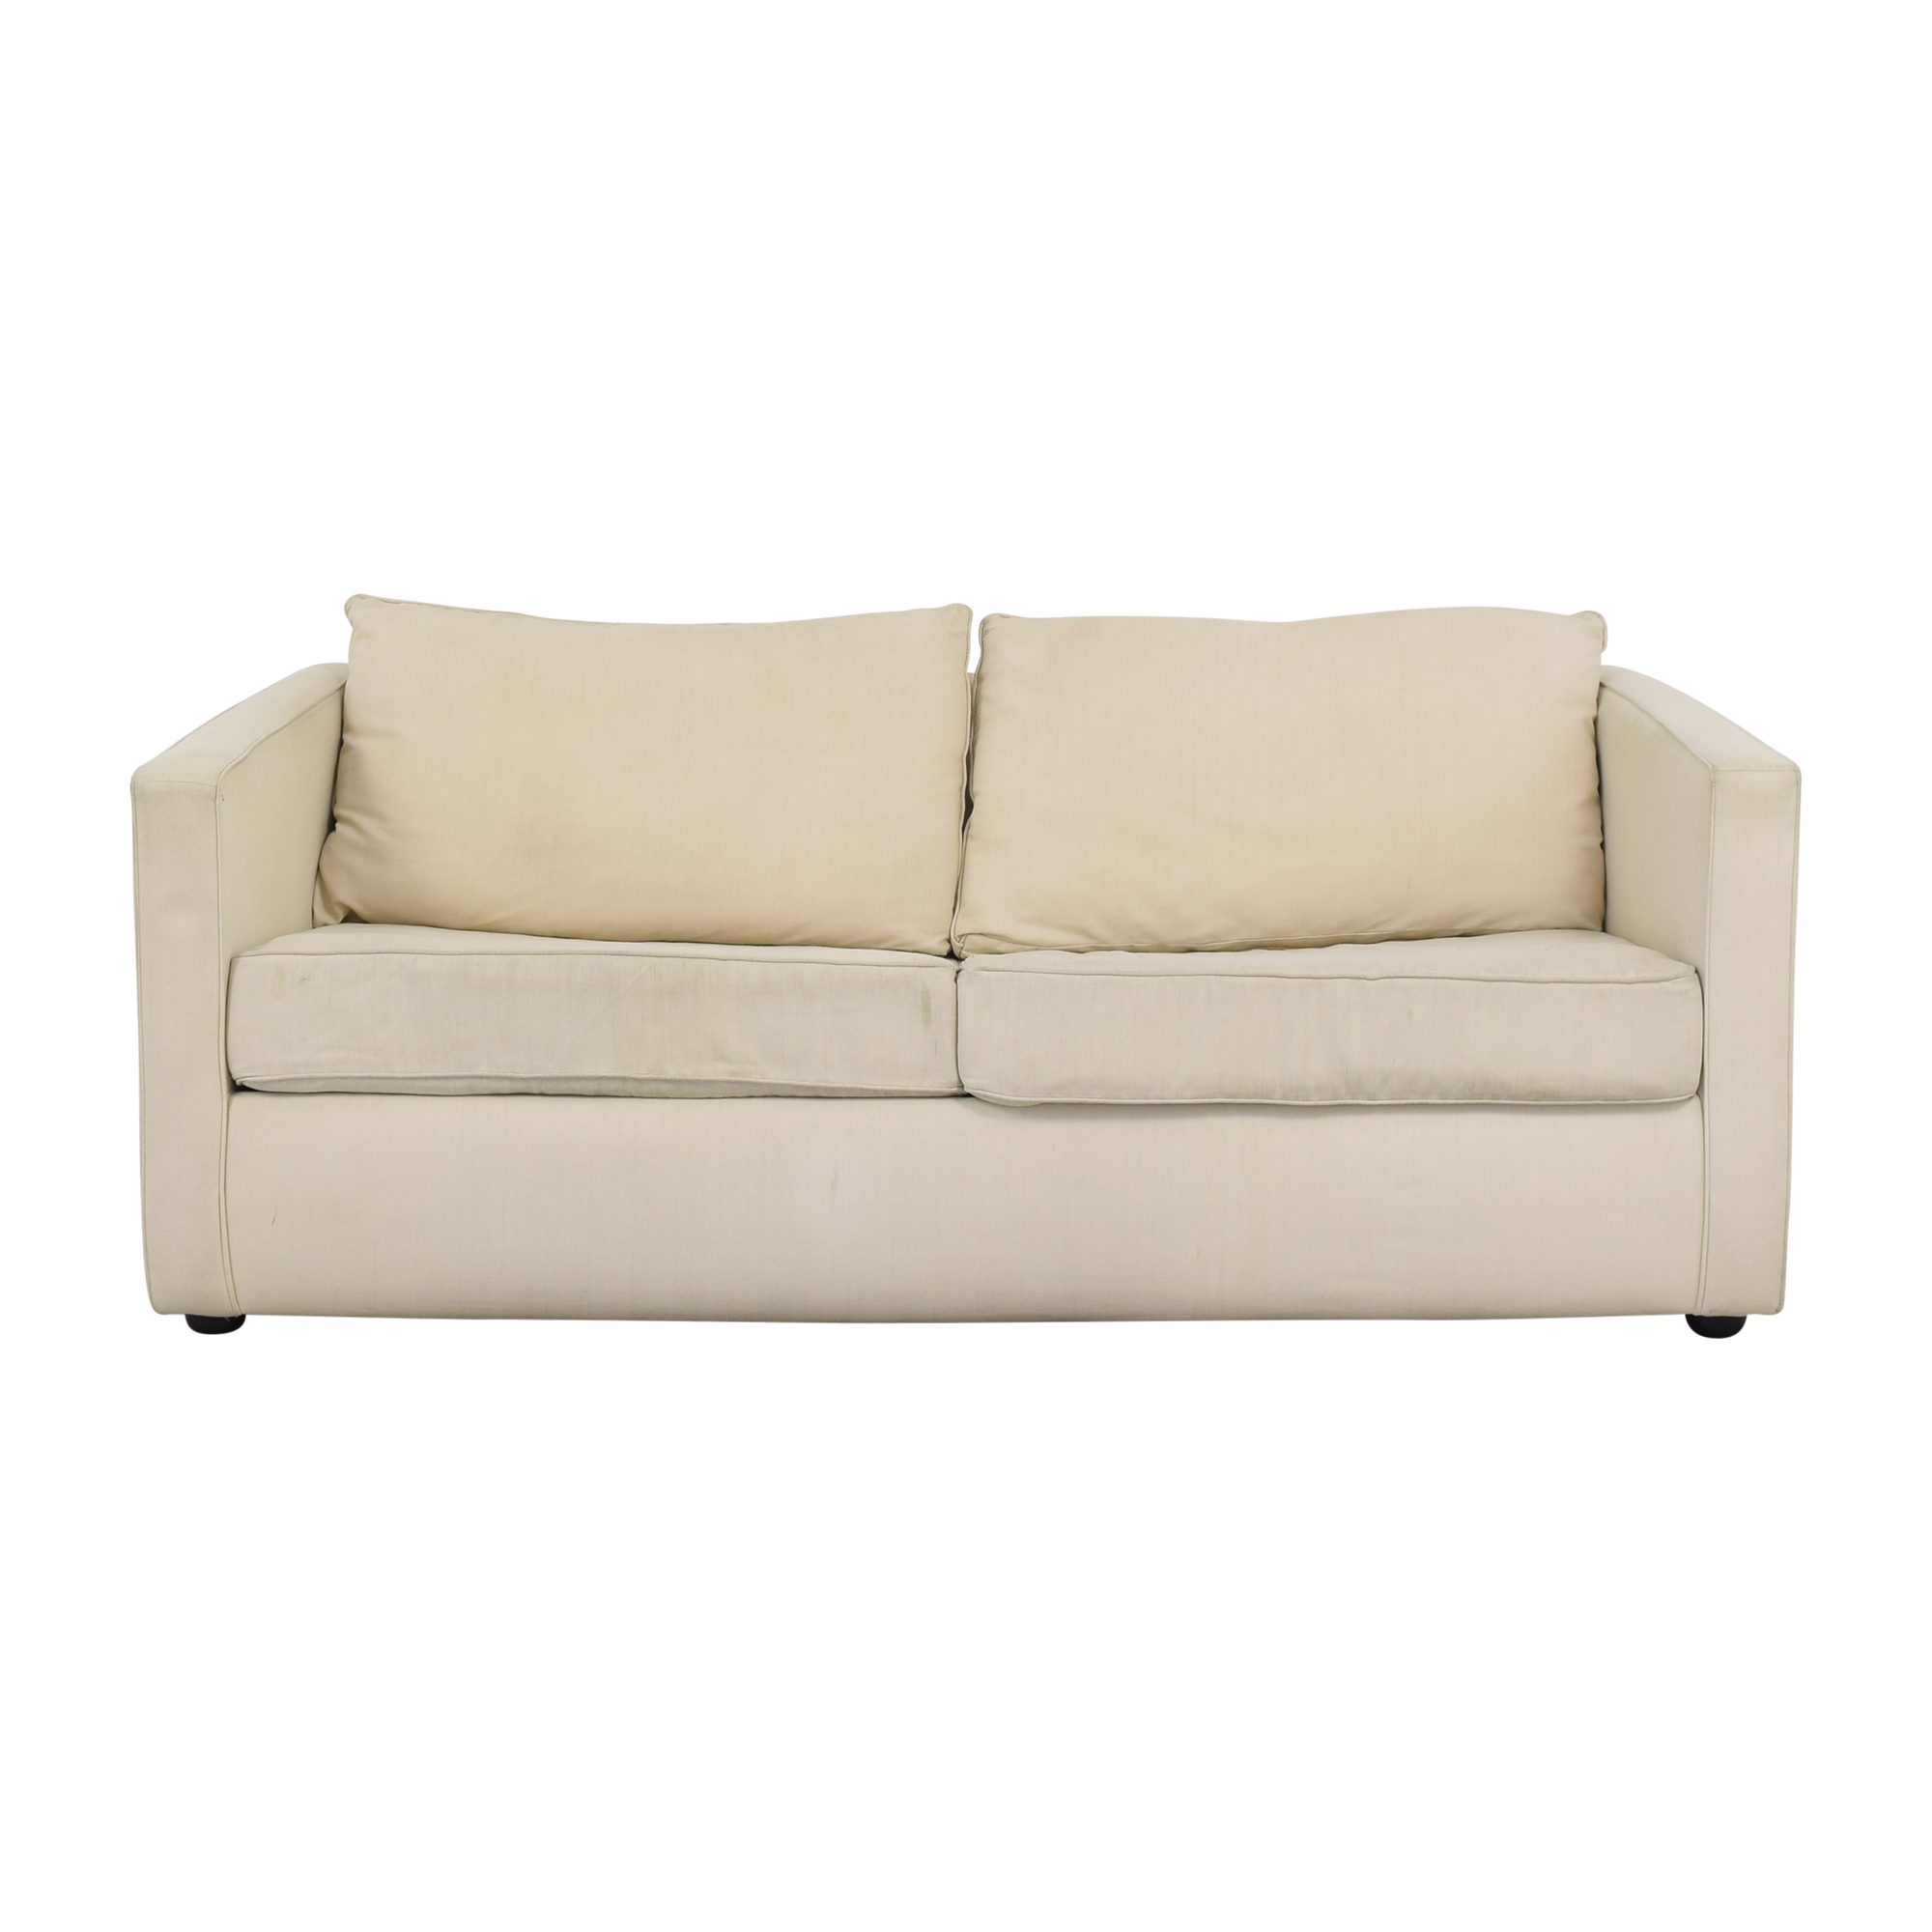 shop KFI Single Cushion Sofa Bed